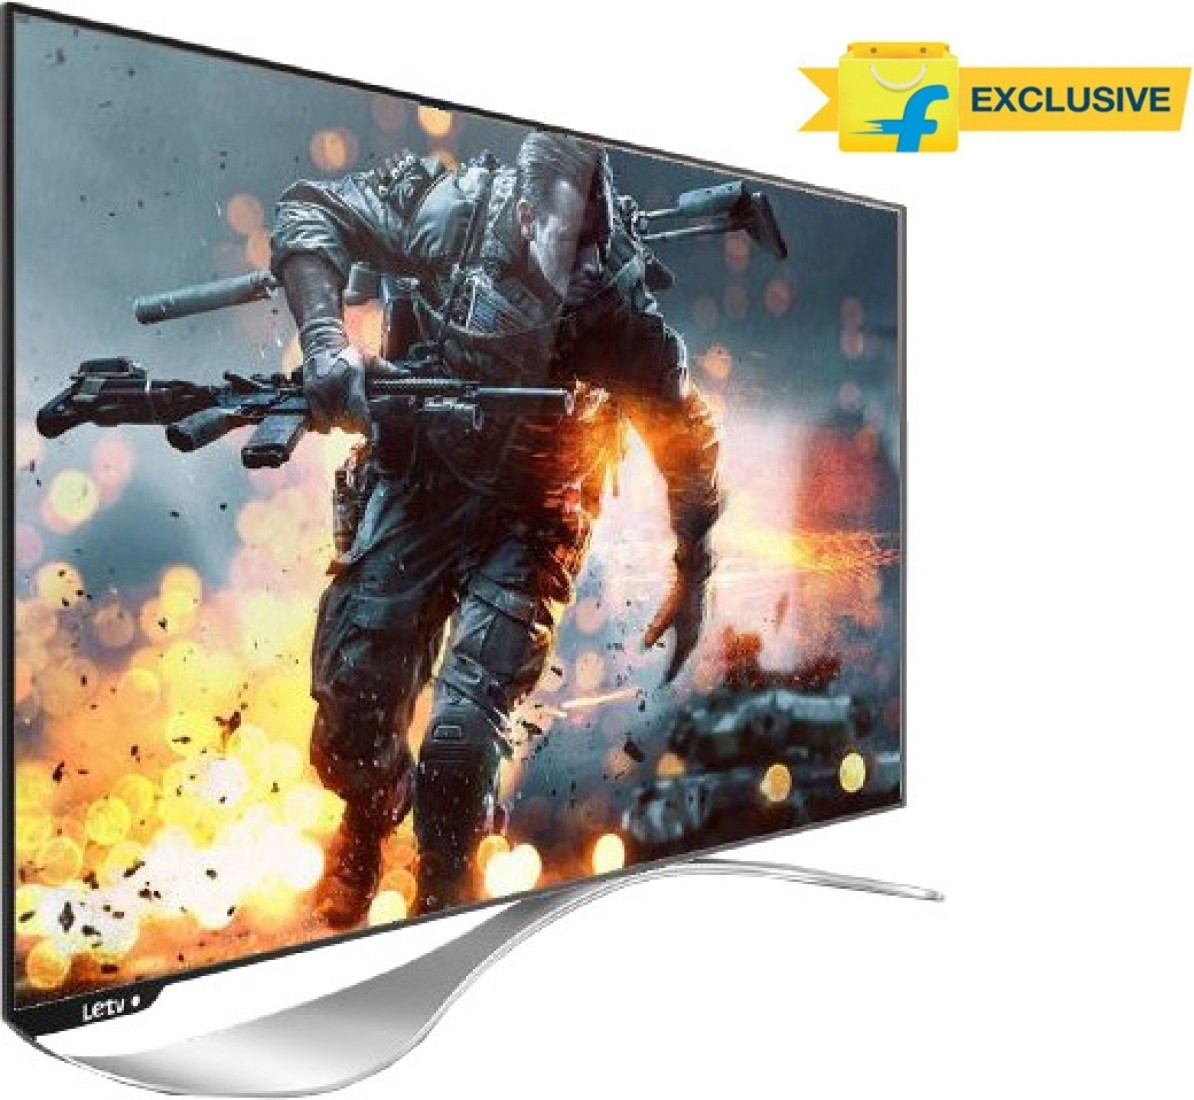 Deals | Starting at Rs.22,990 (43) and above LED TVs